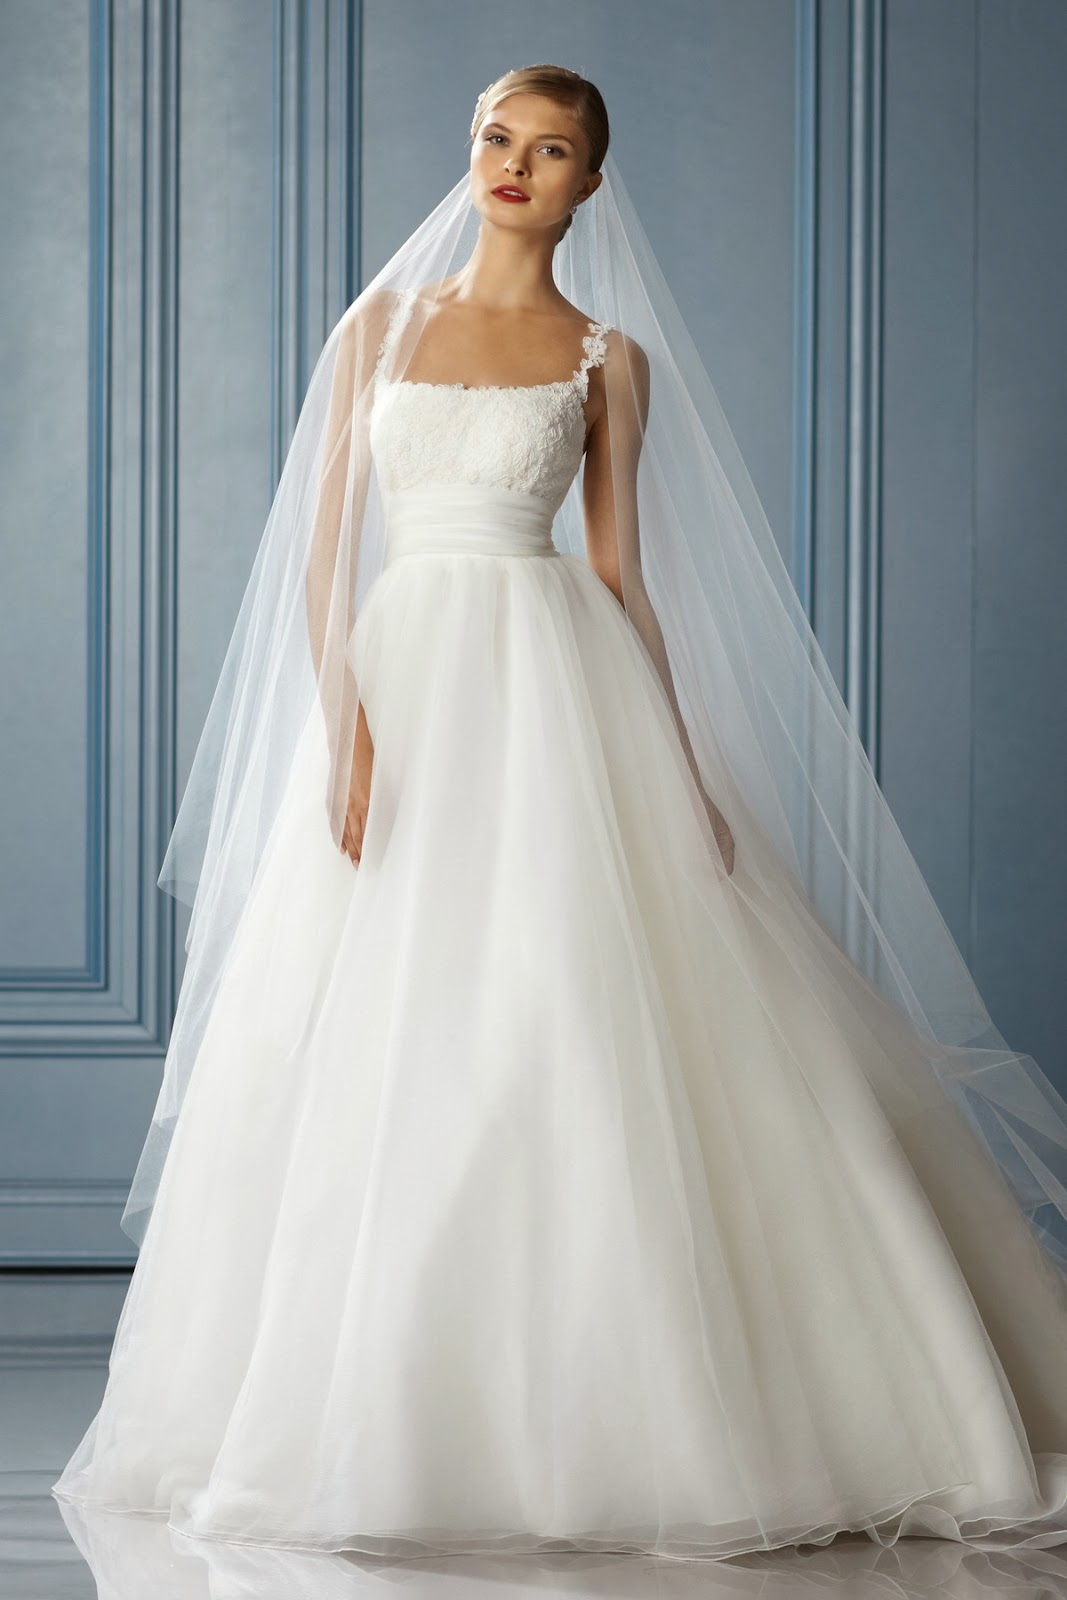 Expensive designer wedding dresses uk wedding dresses in jax for Designer wedding dresses uk